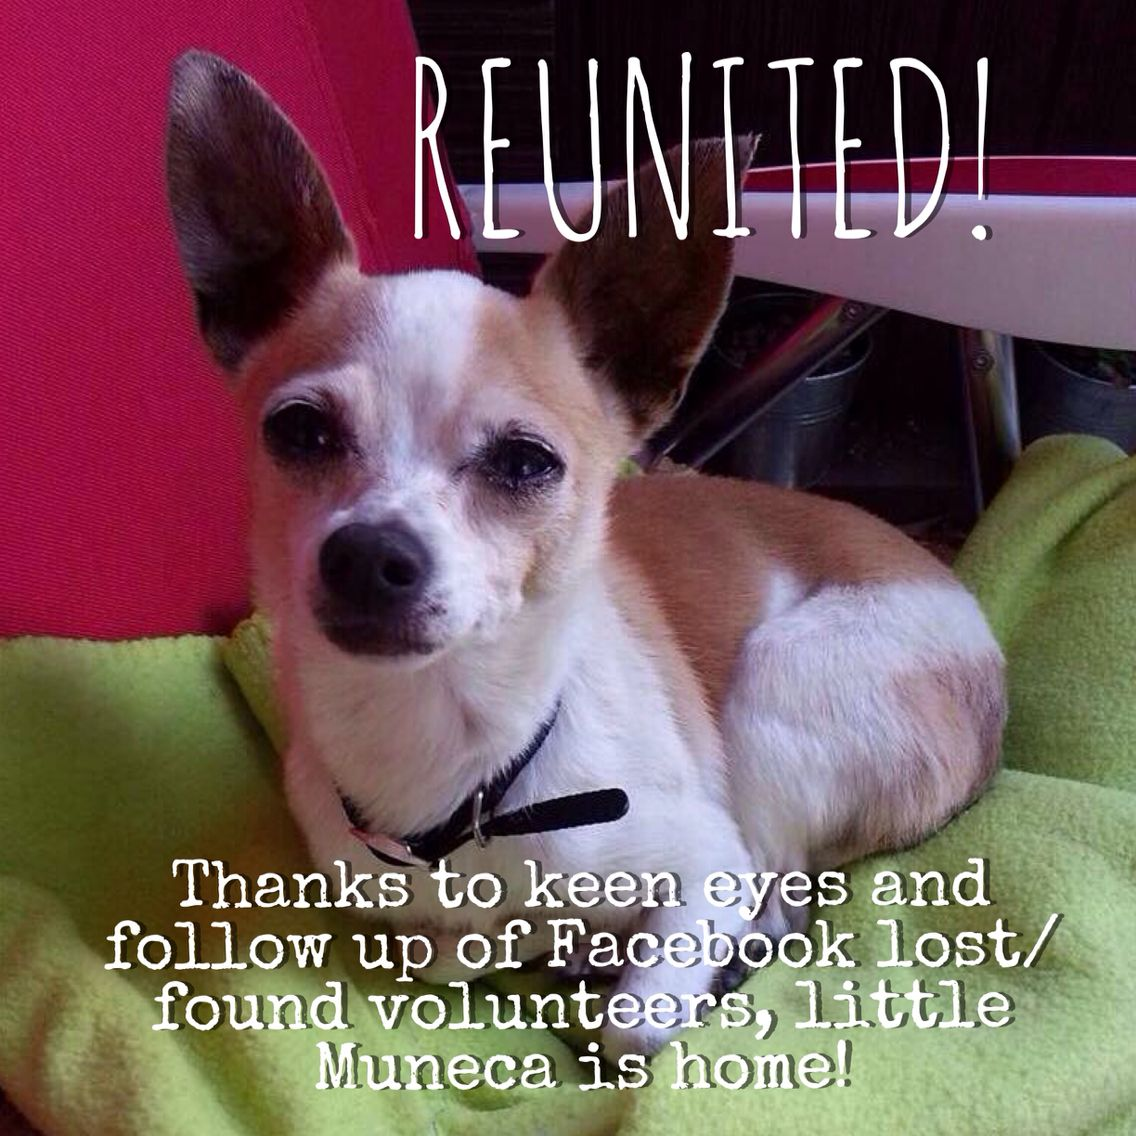 Muneca Has Been Reunited We Are Very Pleased This Pet Has Been Reunited This Pet Was Reunited After 3 Days Found On Jul 08 20 Lost Found Pets Volunteer